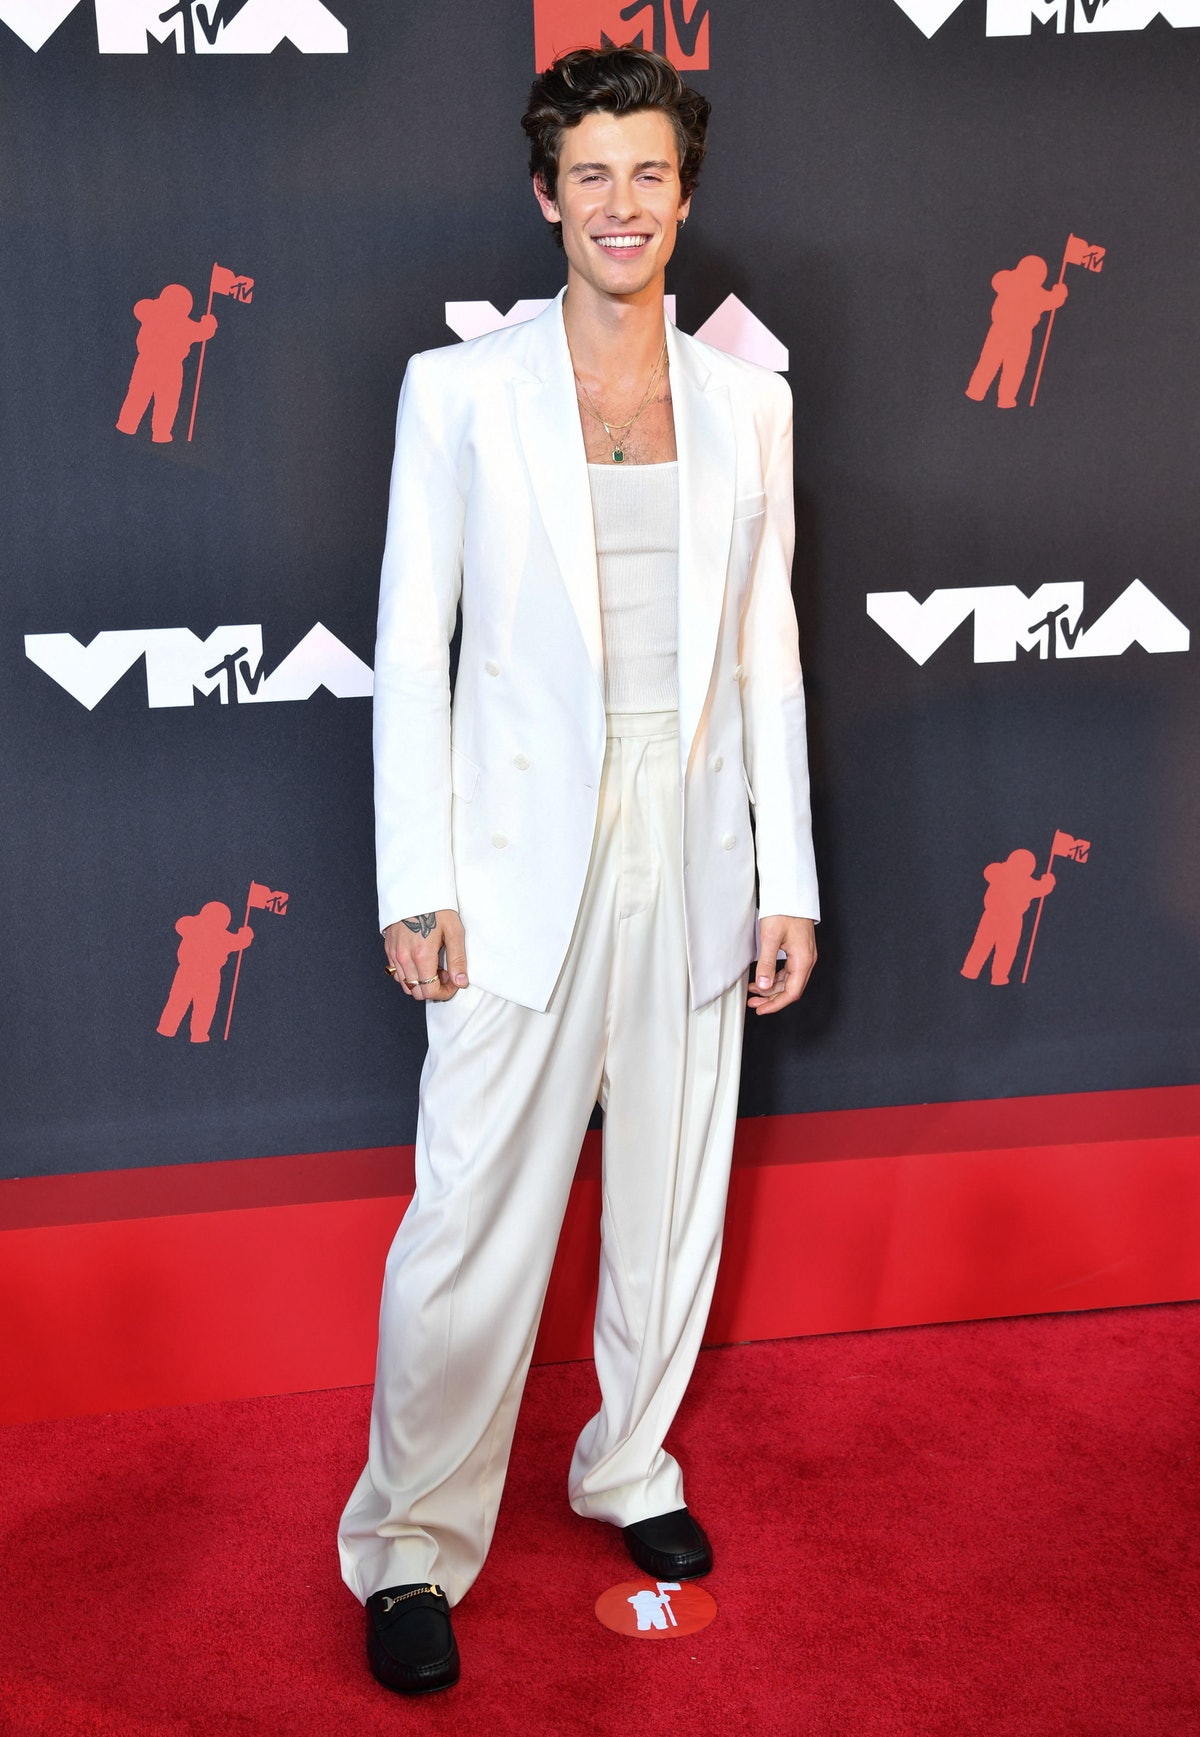 Shawn Mendes arrives for the 2021 MTV Video Music Awards at Barclays Center in Brooklyn, New York, ...